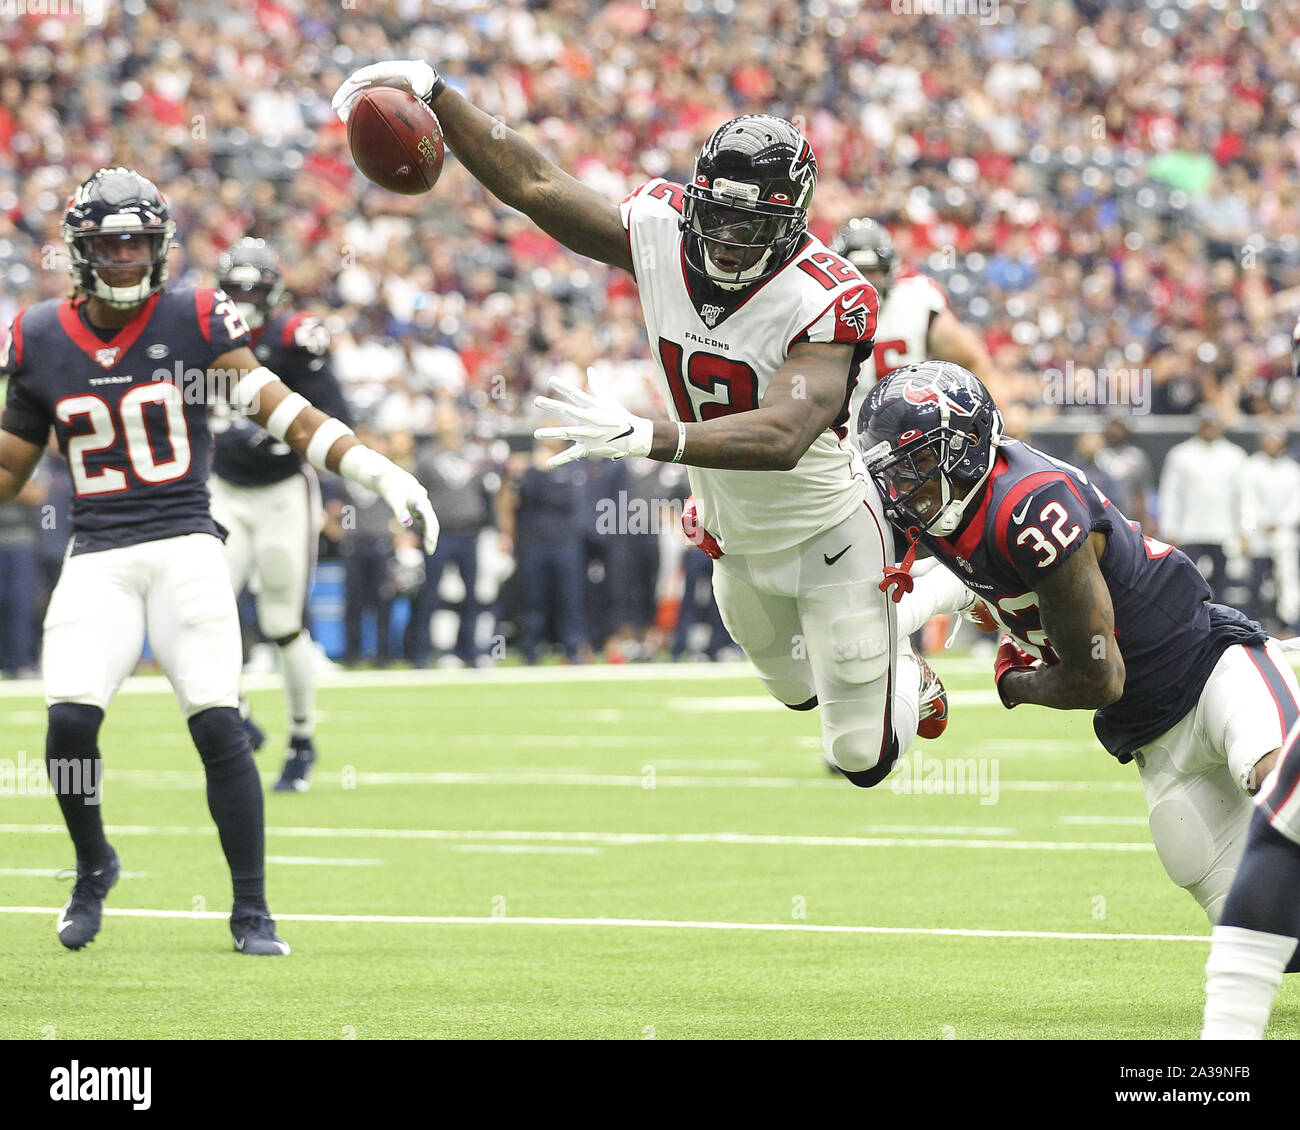 Houston, Texas, USA. 6th Oct, 2019. Atlanta Falcons wide receiver Mohamed Sanu (12) dives into the end zone on a 14-yard touchdown reception during the first quarter of an NFL game between the Houston Texans and the Atlanta Falcons at NRG Stadium in Houston, Texas, on Oct. 6, 2019. Credit: Scott Coleman/ZUMA Wire/Alamy Live News Stock Photo